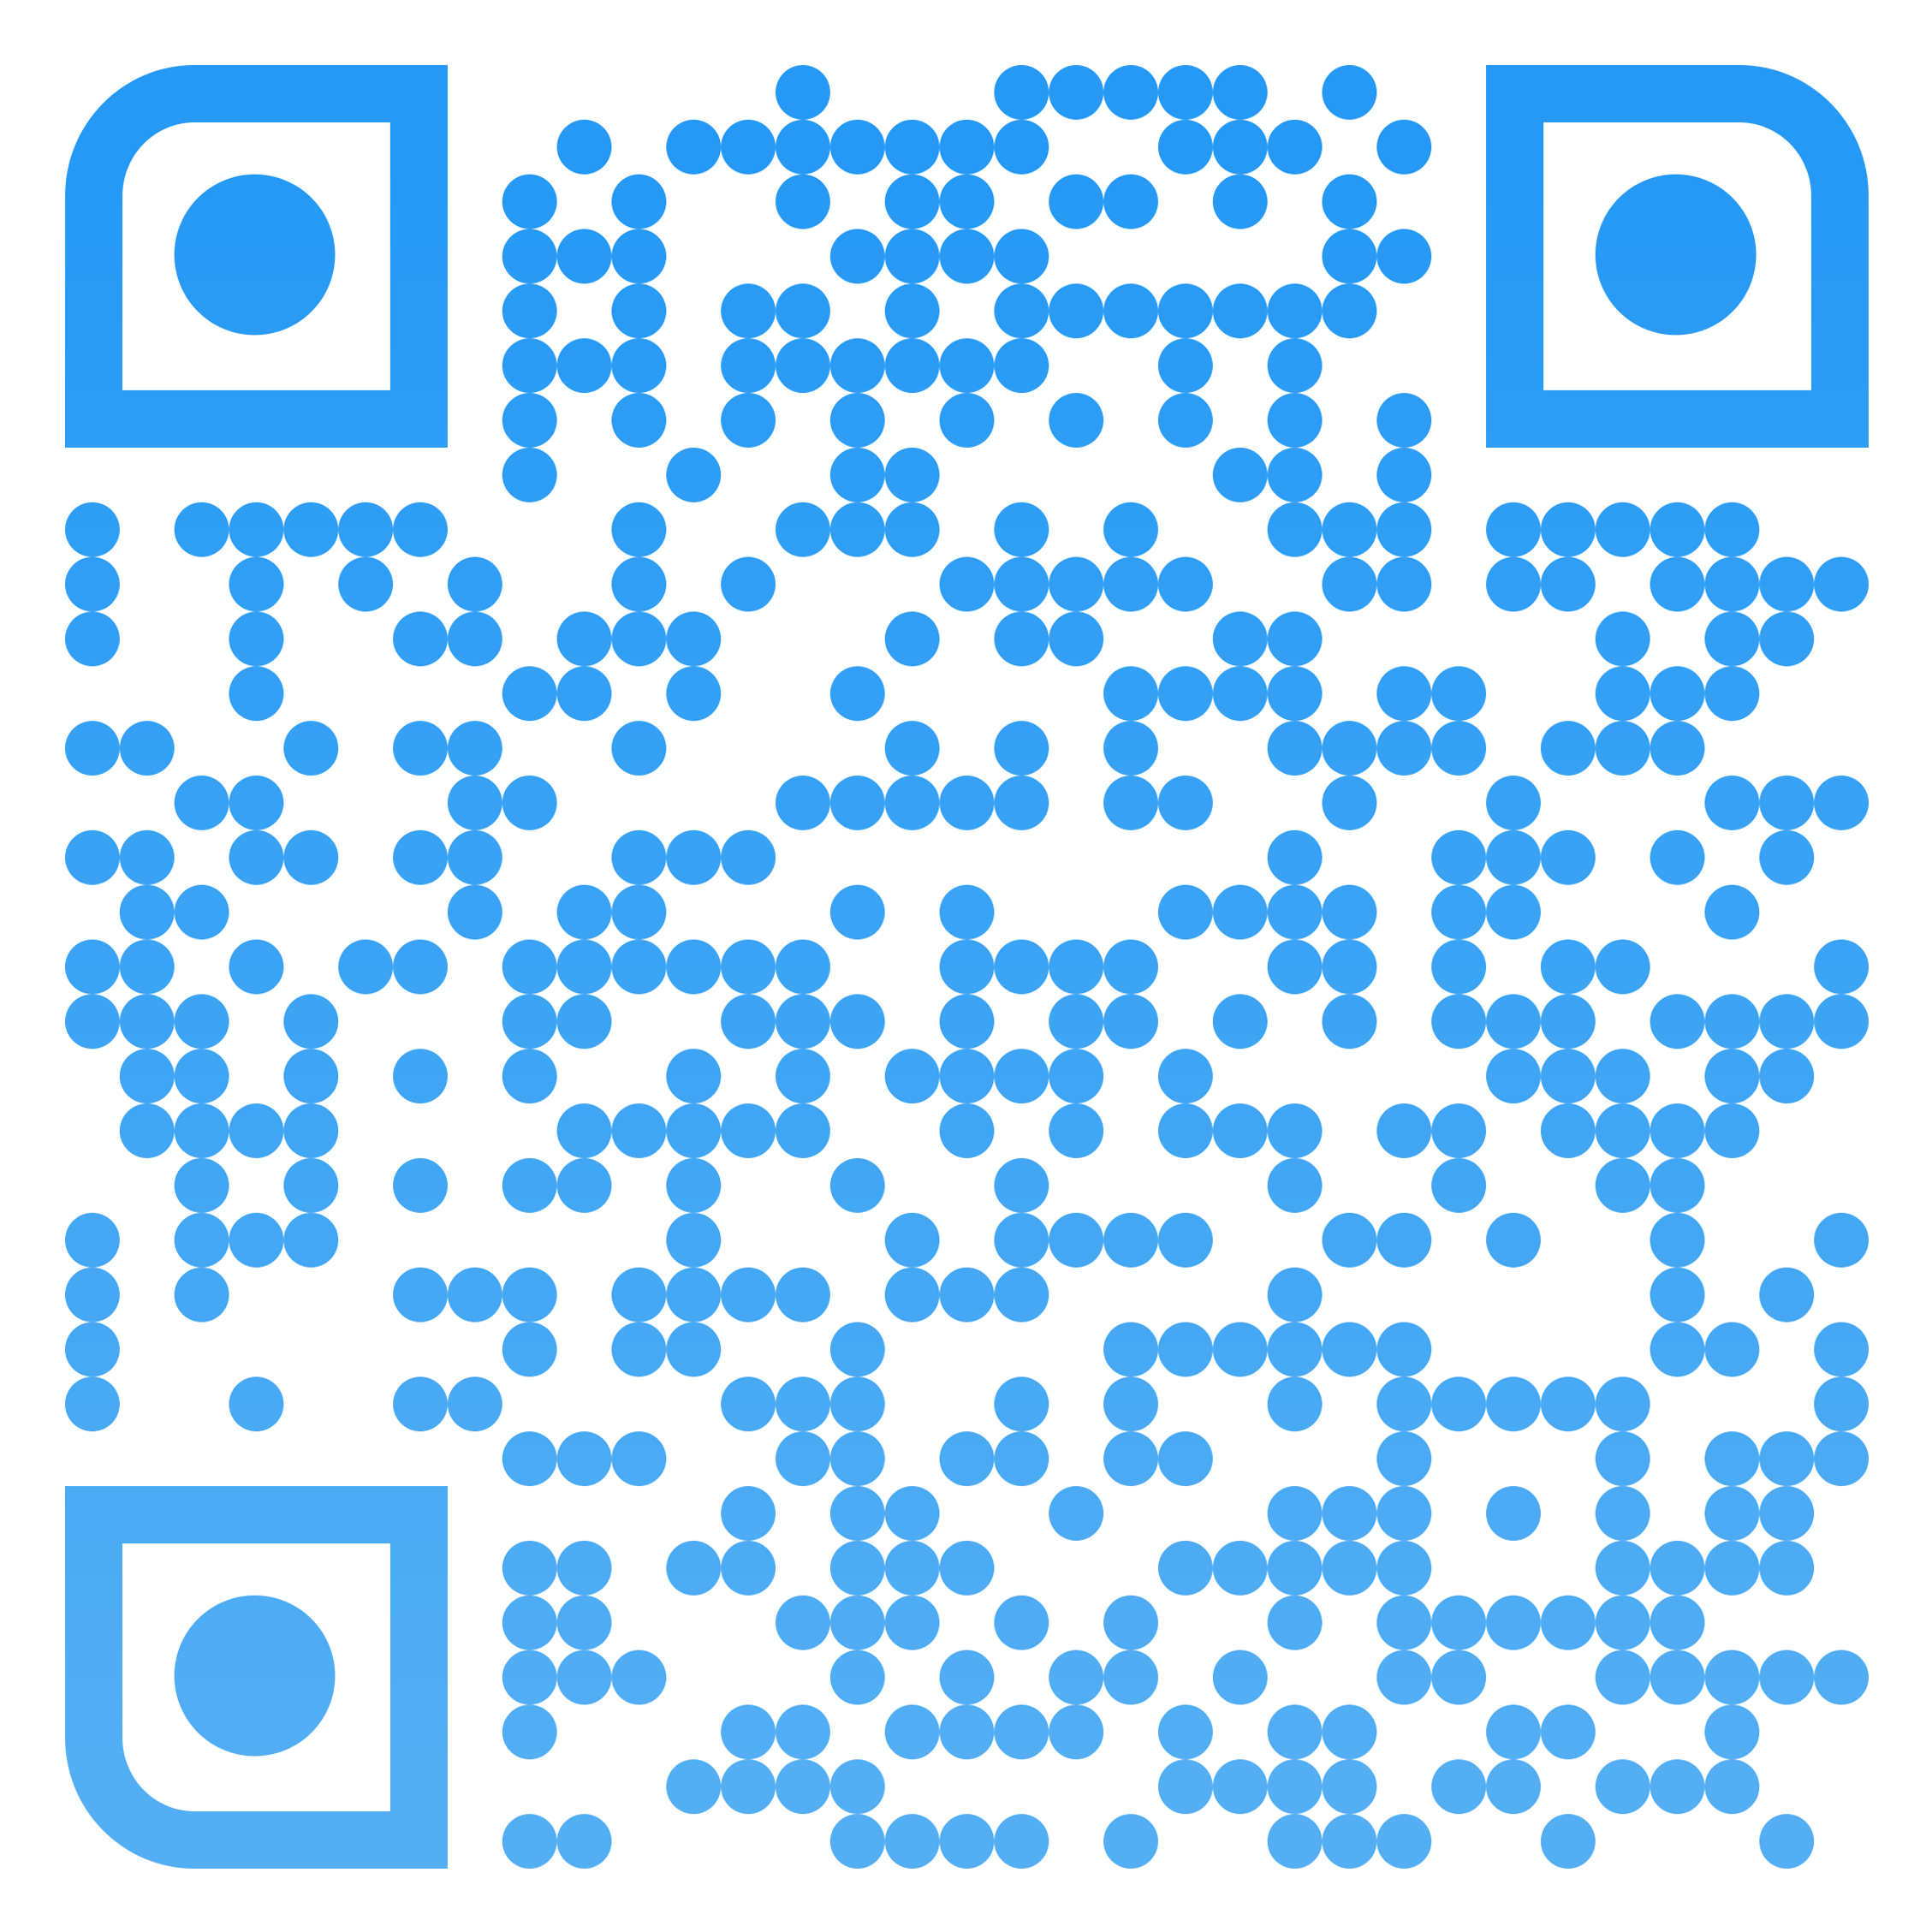 qr code robux Scan And Download Linkrick App Google Play Codes Digital Business Card